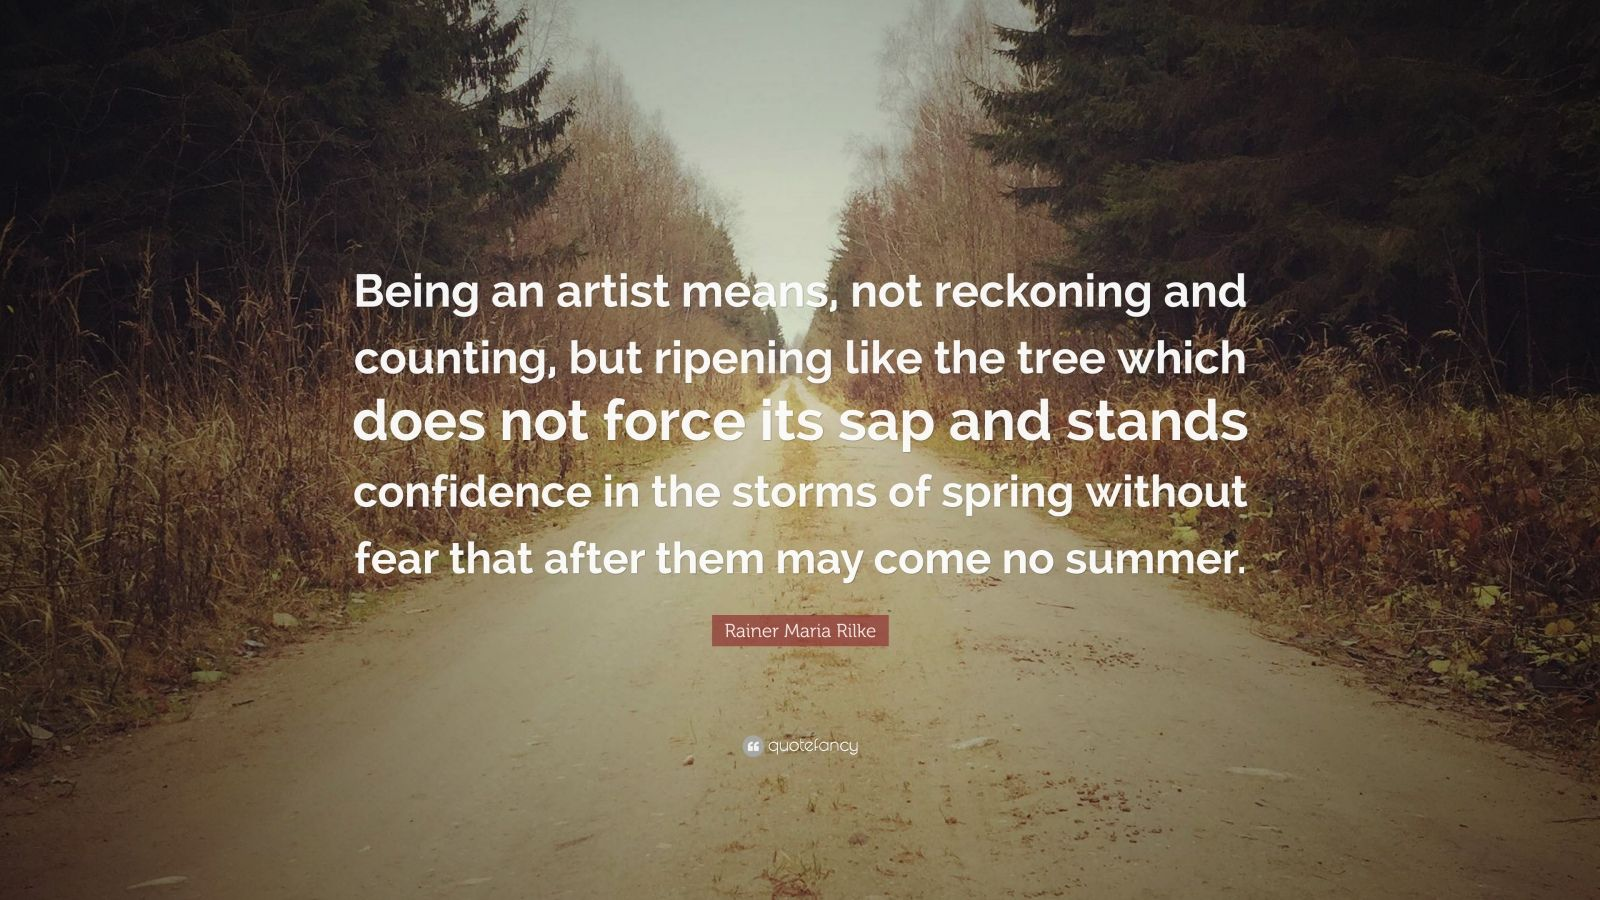 """Rainer Maria Rilke Quote: """"Being an artist means, not reckoning and counting, but ripening like the tree which does not force its sap and stands confidence in the storms of spring without fear that after them may come no summer."""""""